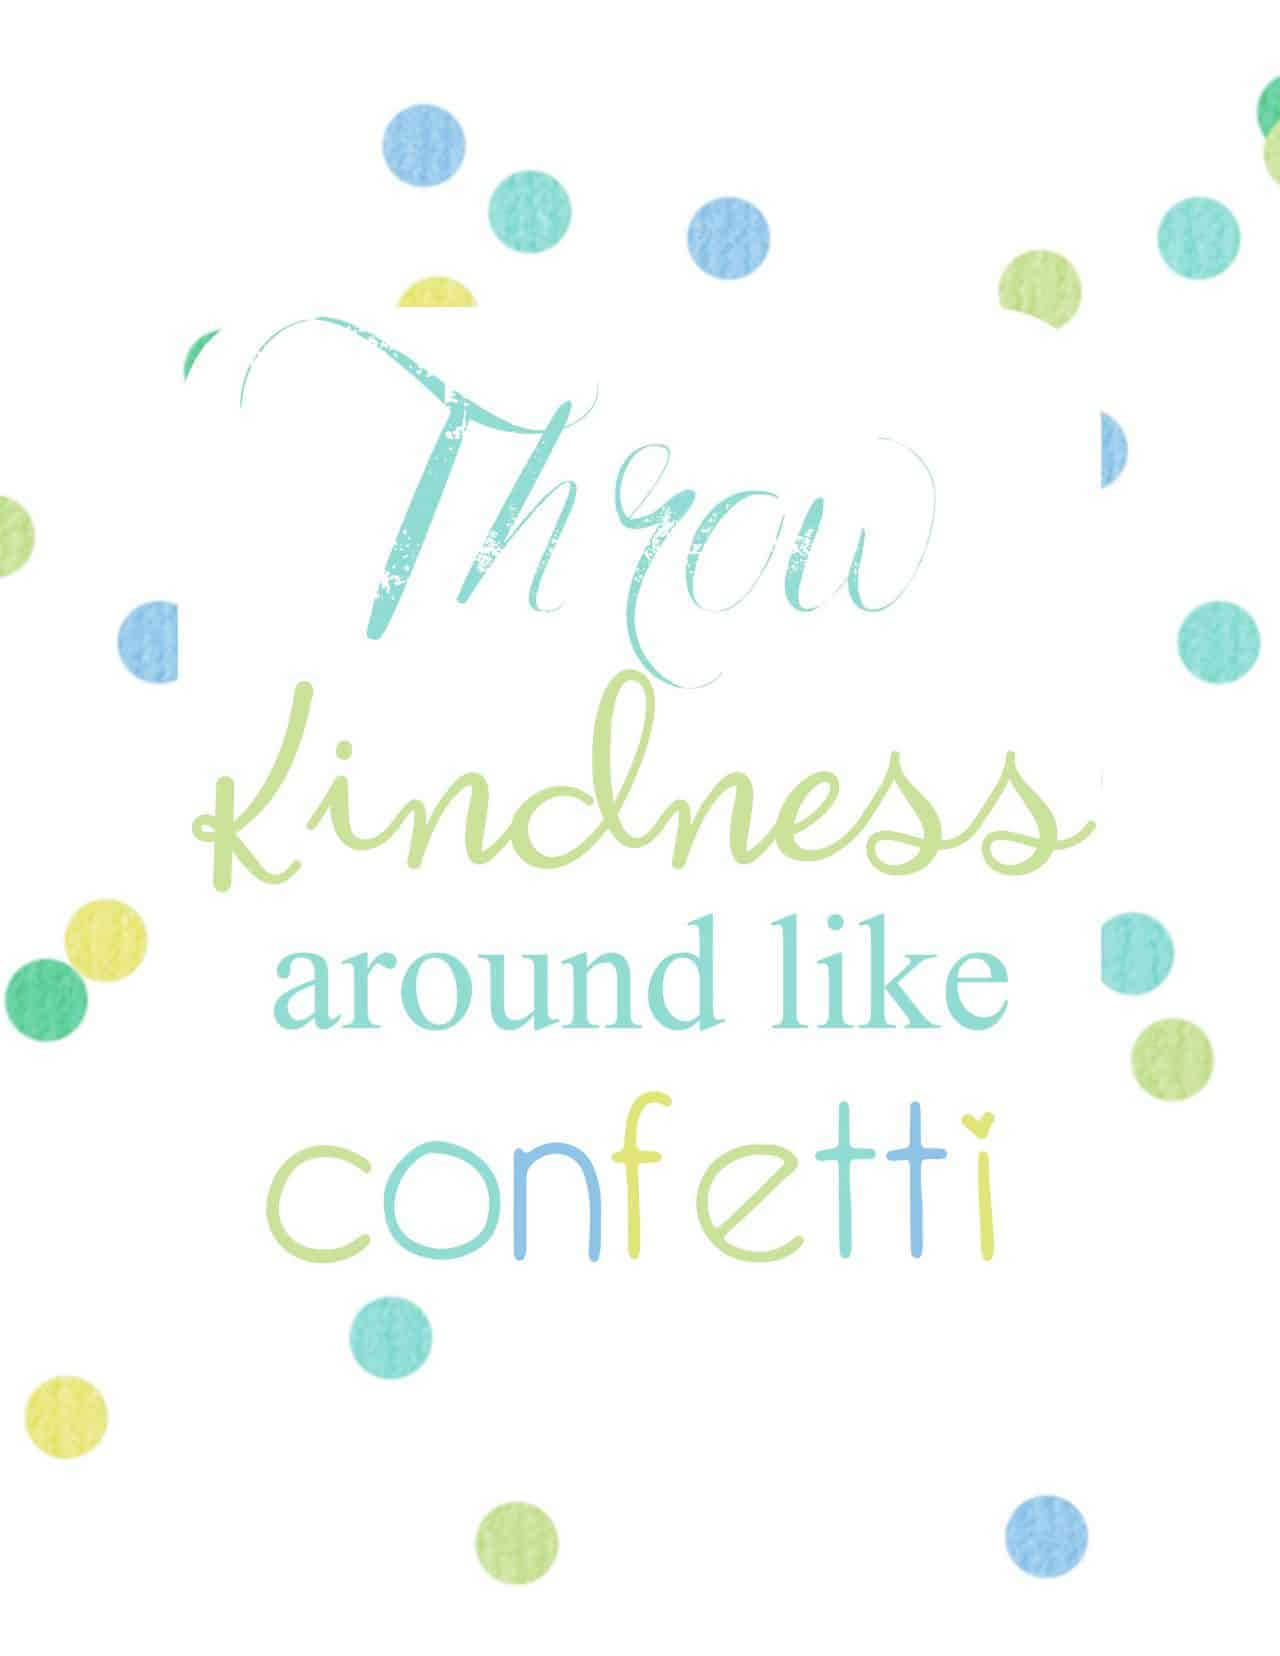 Throw Kindness Around Like Confetti free printable with blue and green lettering and blue and green confetti